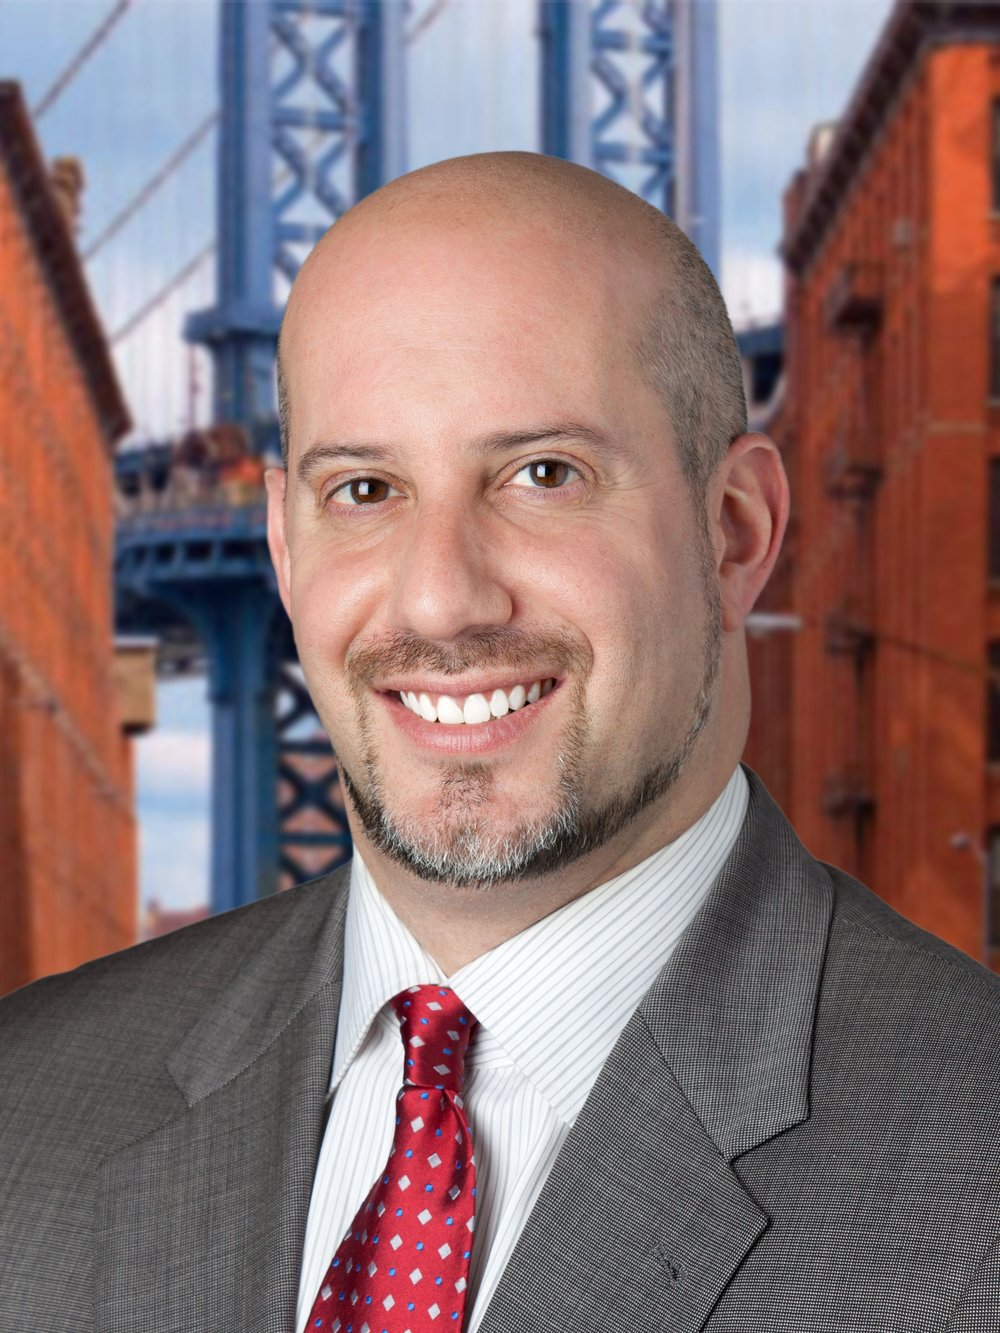 Noah Rosenblatt - Noah Rosenblatt is a licensed real estate broker and the founder of UrbanDigs.com, a collaborative ecosystem for agents and consumers to search, research and price real estate in New York City. Using real time, hyper-local information, UrbanDigs provides deep, relevant insights for smarter searching and decisions in a mobile friendly way. Noah is also respected in the industry, frequently quoted by the media and is relied upon to power quarterly market reports for a number of top firms.